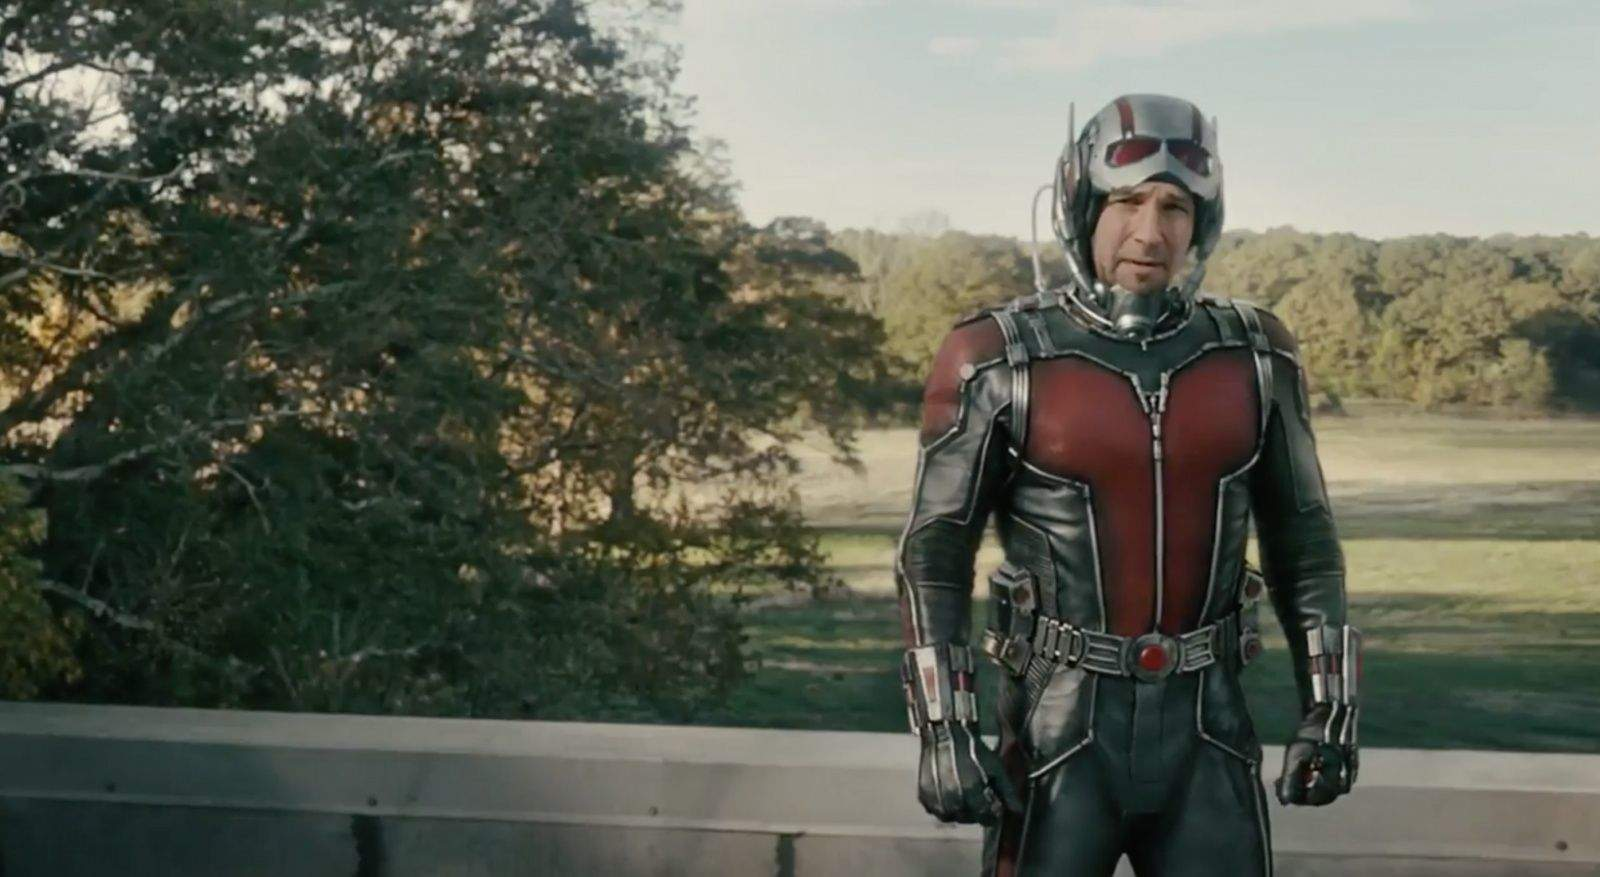 Rudd looks a bit skeptical. Photo: Marvel Studios